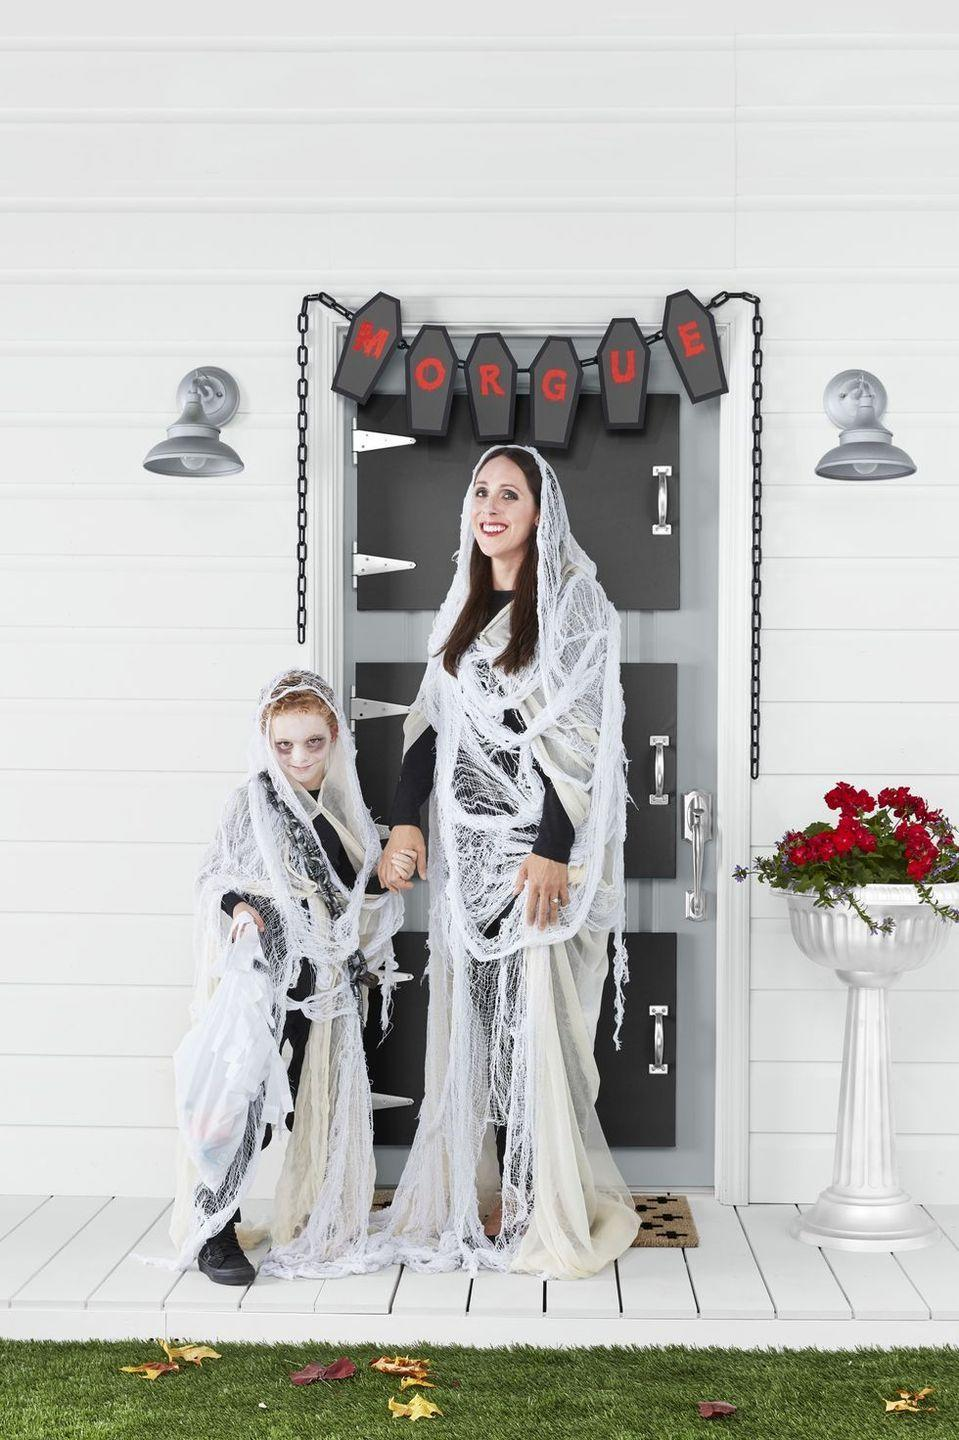 """<p>Got cheesecloth and some black eyeshadow? You're halfway to creating these gauzy ghost costumes, which are just the right mix of """"scary"""" and """"friendly"""" to appeal to both kids and their parents. </p><p><strong>Make the Ghost Costumes: </strong>Start with a base layer of black clothing. Paint face with <a href=""""https://www.amazon.com/Snazaroo-Classic-Face-Paint-White/dp/B000H6W2GW?tag=syn-yahoo-20&ascsubtag=%5Bartid%7C10050.g.23785711%5Bsrc%7Cyahoo-us"""" rel=""""nofollow noopener"""" target=""""_blank"""" data-ylk=""""slk:white face paint"""" class=""""link rapid-noclick-resp"""">white face paint</a> and add <a href=""""https://www.amazon.com/Alima-Pure-Satin-Matte-Eyeshadow/dp/B07F7DQ1Q8?tag=syn-yahoo-20&ascsubtag=%5Bartid%7C10050.g.23785711%5Bsrc%7Cyahoo-us"""" rel=""""nofollow noopener"""" target=""""_blank"""" data-ylk=""""slk:black eyeshadow"""" class=""""link rapid-noclick-resp"""">black eyeshadow</a> around the eyes. Drape and pin neutral cheesecloth, holding it in place with white safety pins and allowing it to trail on the floor a bit. Add a second layer of large, loosely woven, white gauze—we used door and window decorating material. Drape a plastic chain and vintage-inspired lock around the shoulders.</p><p><a class=""""link rapid-noclick-resp"""" href=""""https://www.amazon.com/Good-Cook-Cheesecloth-cotton-White/dp/B000BQKCF6?tag=syn-yahoo-20&ascsubtag=%5Bartid%7C10050.g.23785711%5Bsrc%7Cyahoo-us"""" rel=""""nofollow noopener"""" target=""""_blank"""" data-ylk=""""slk:SHOP CHEESECLOTH"""">SHOP CHEESECLOTH</a></p>"""